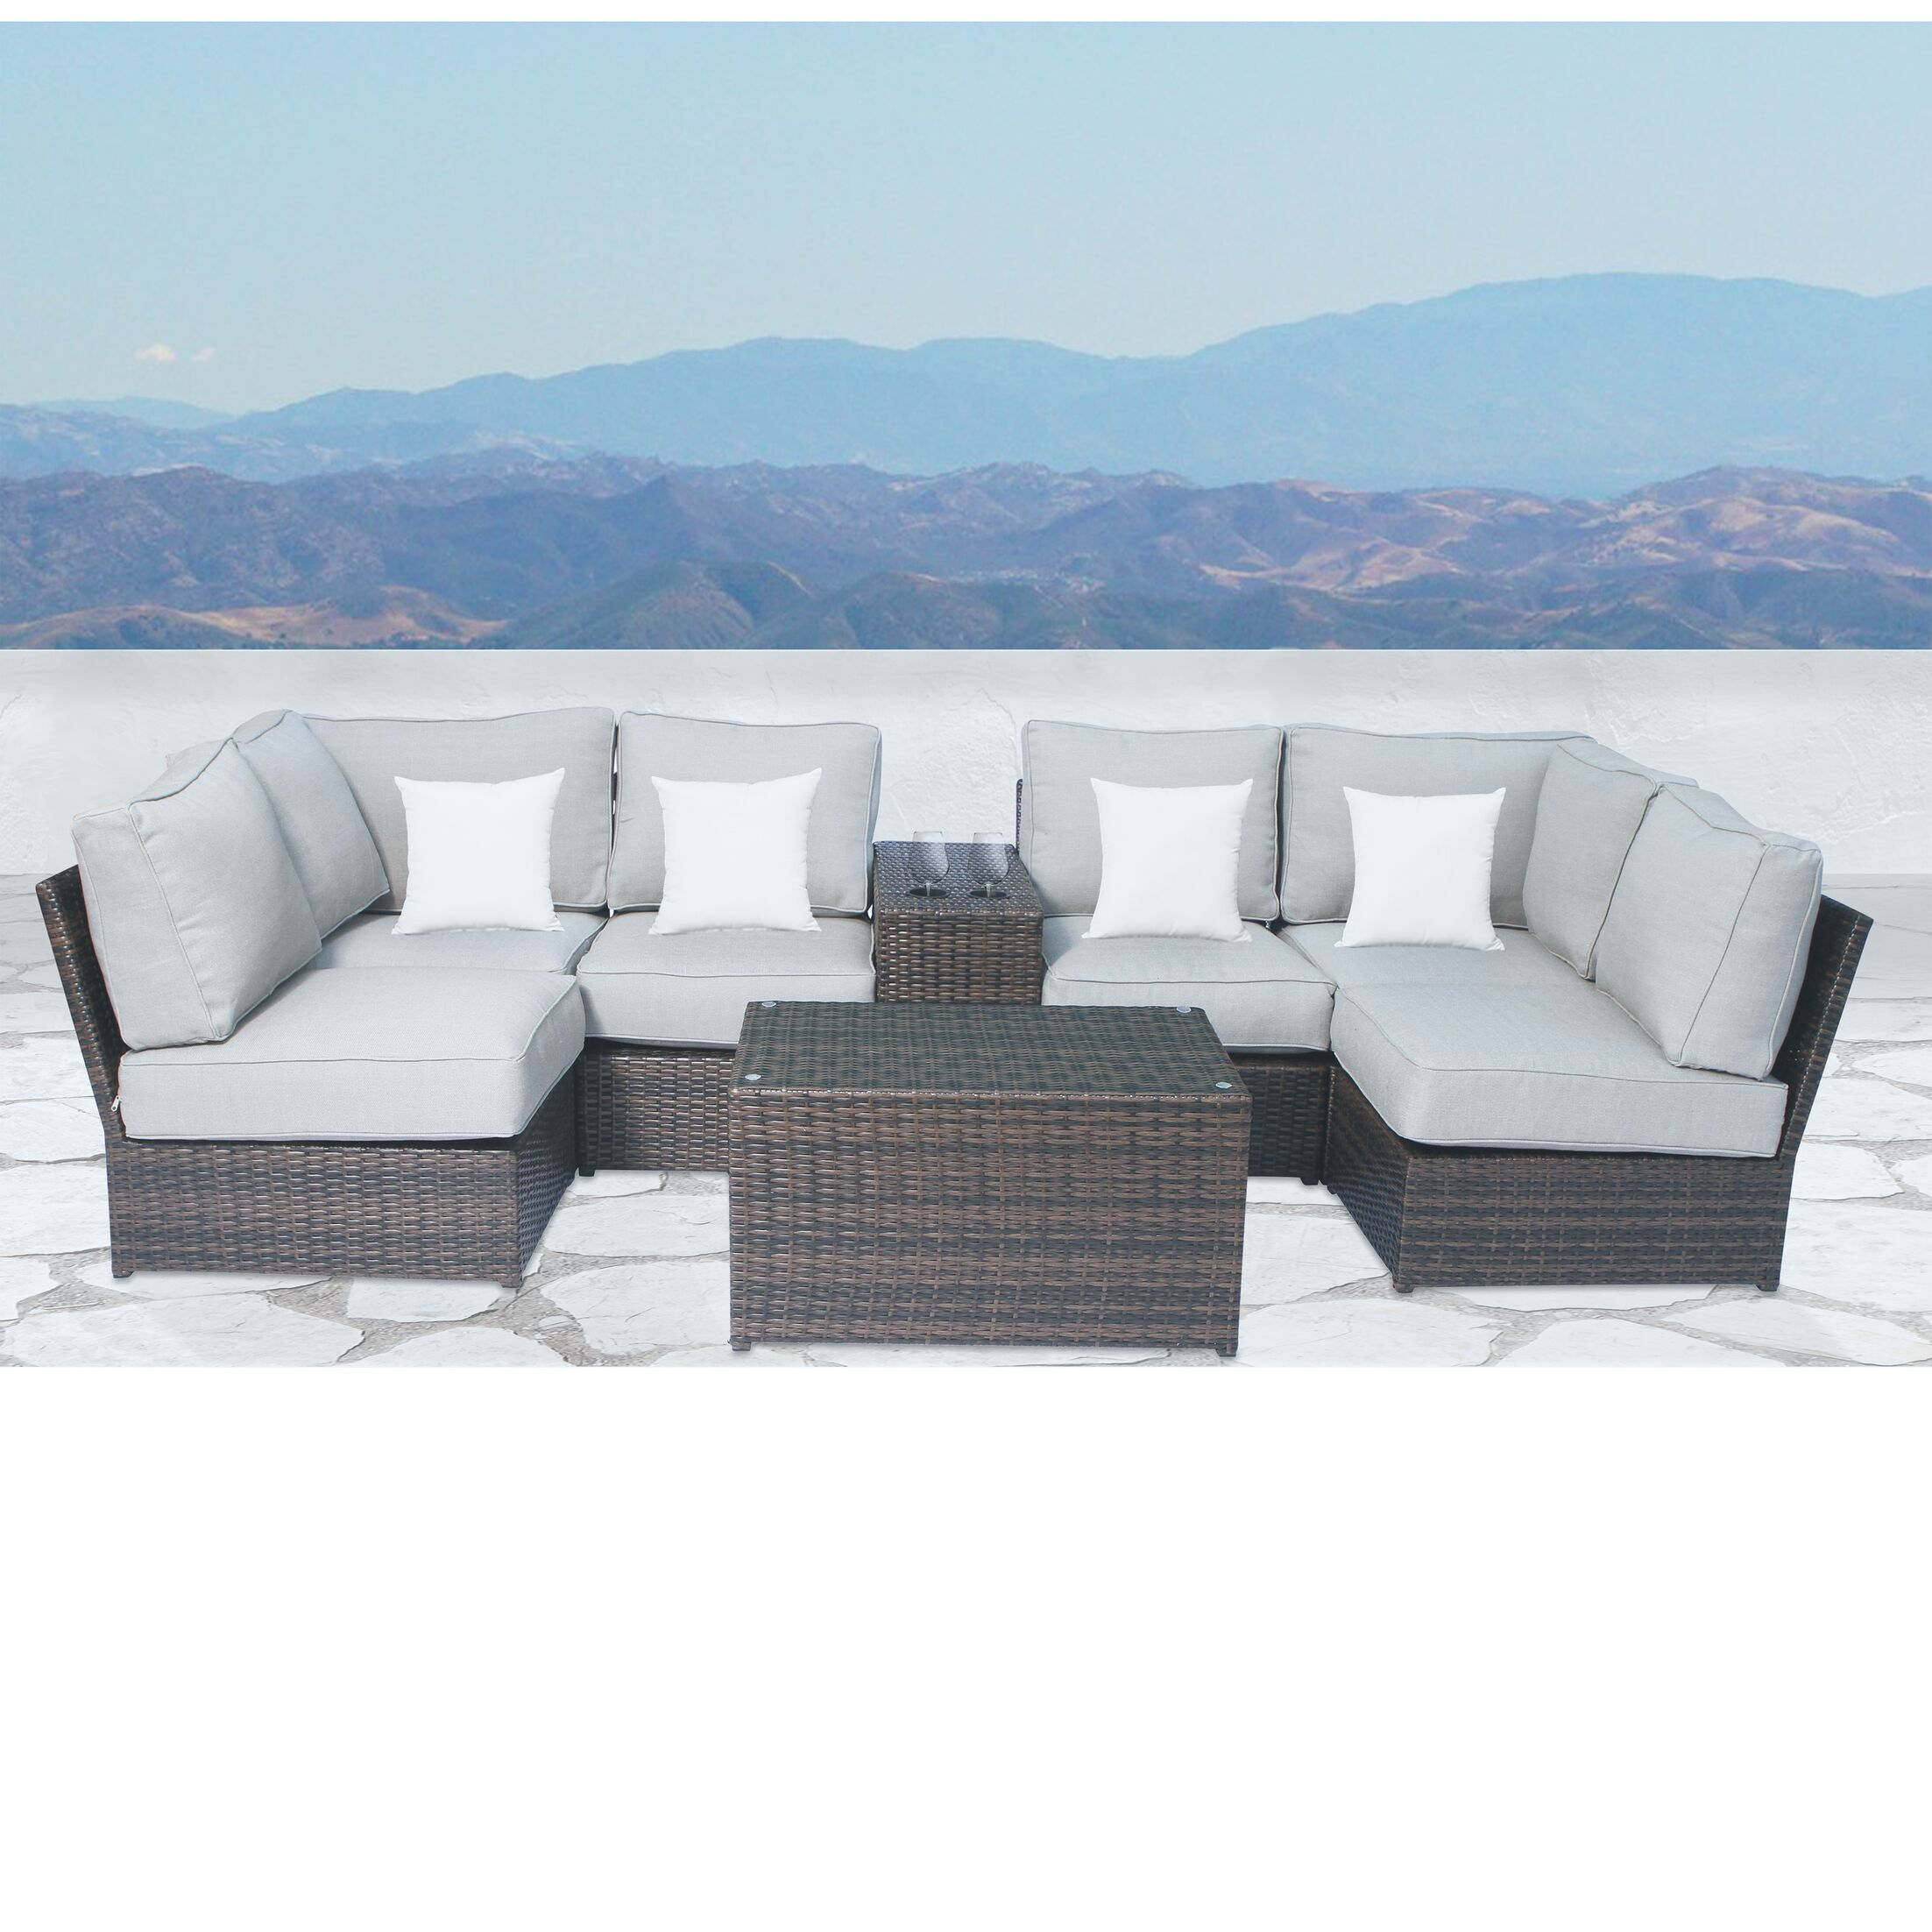 Simmerman 8 Piece Sectional Set with Cushions